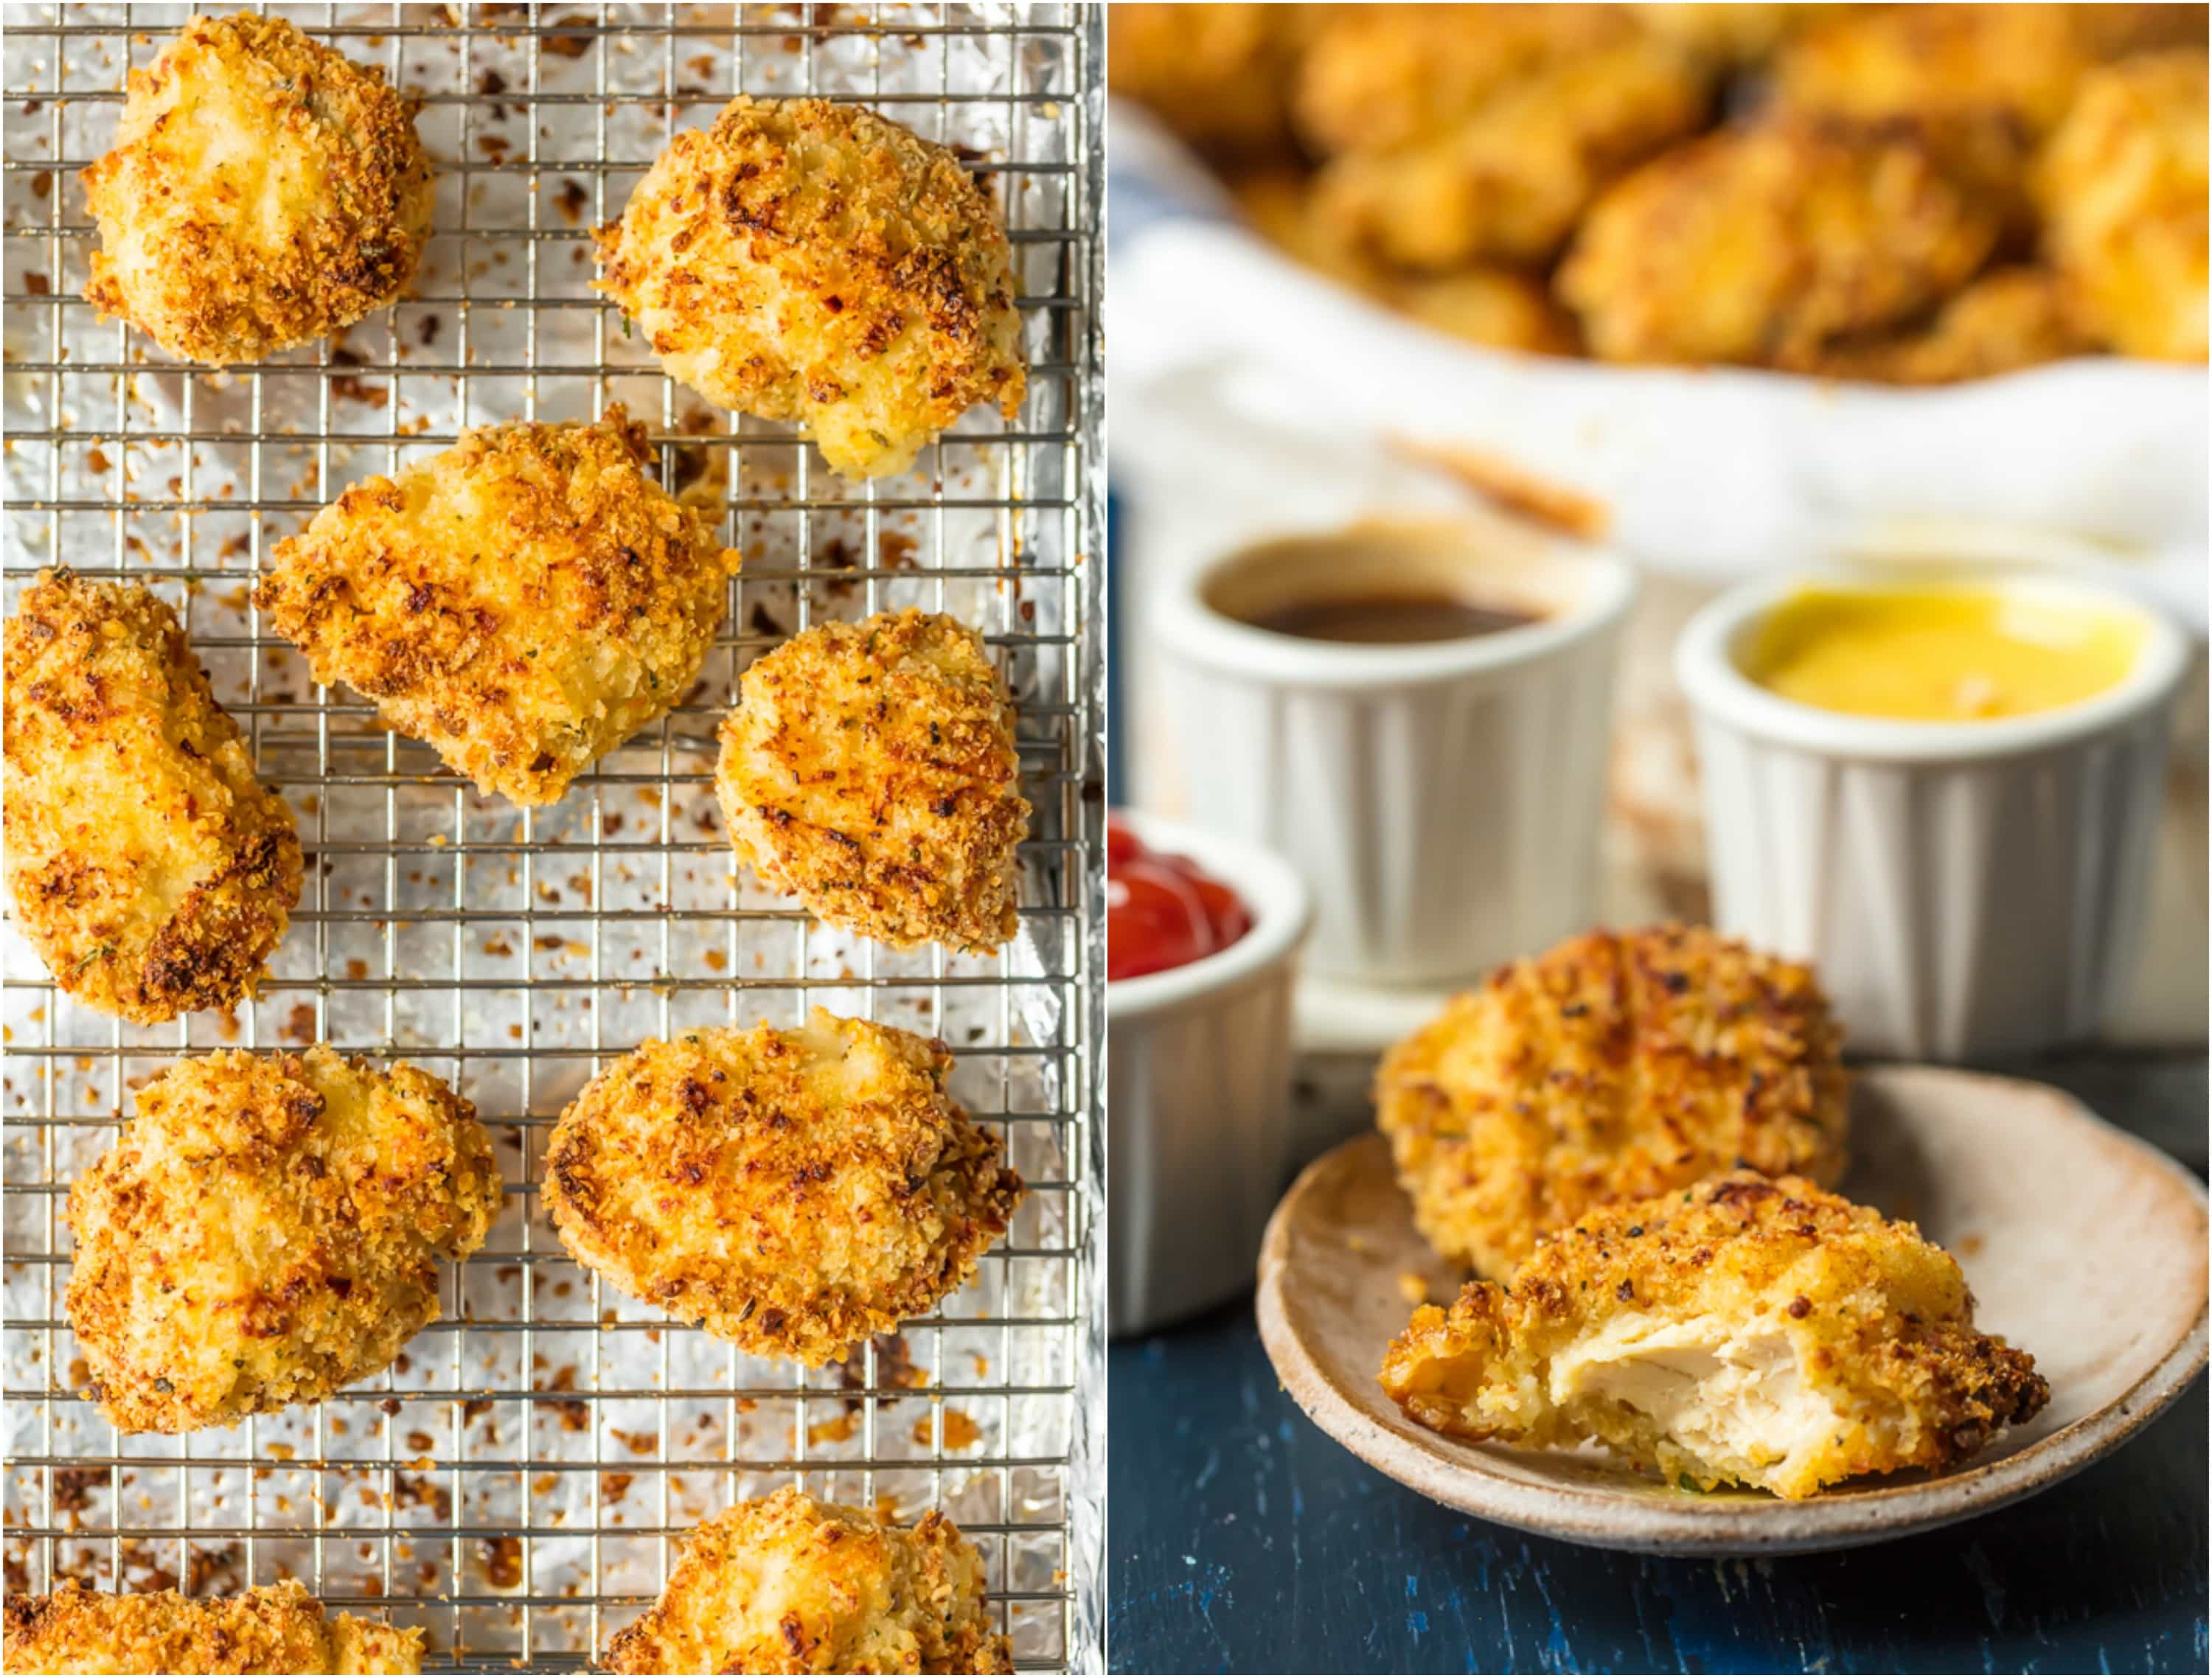 Baked Chicken Nuggets are a must make for any busy family. These BAKED EXTRA CRISPY PARMESAN CHICKEN NUGGETS will blow your mind and become an instant family favorite. Made healthier by baking instead of frying, you'll never miss the grease. Kids and adults will be requesting these flavorful Homemade Chicken Nuggets again and again!